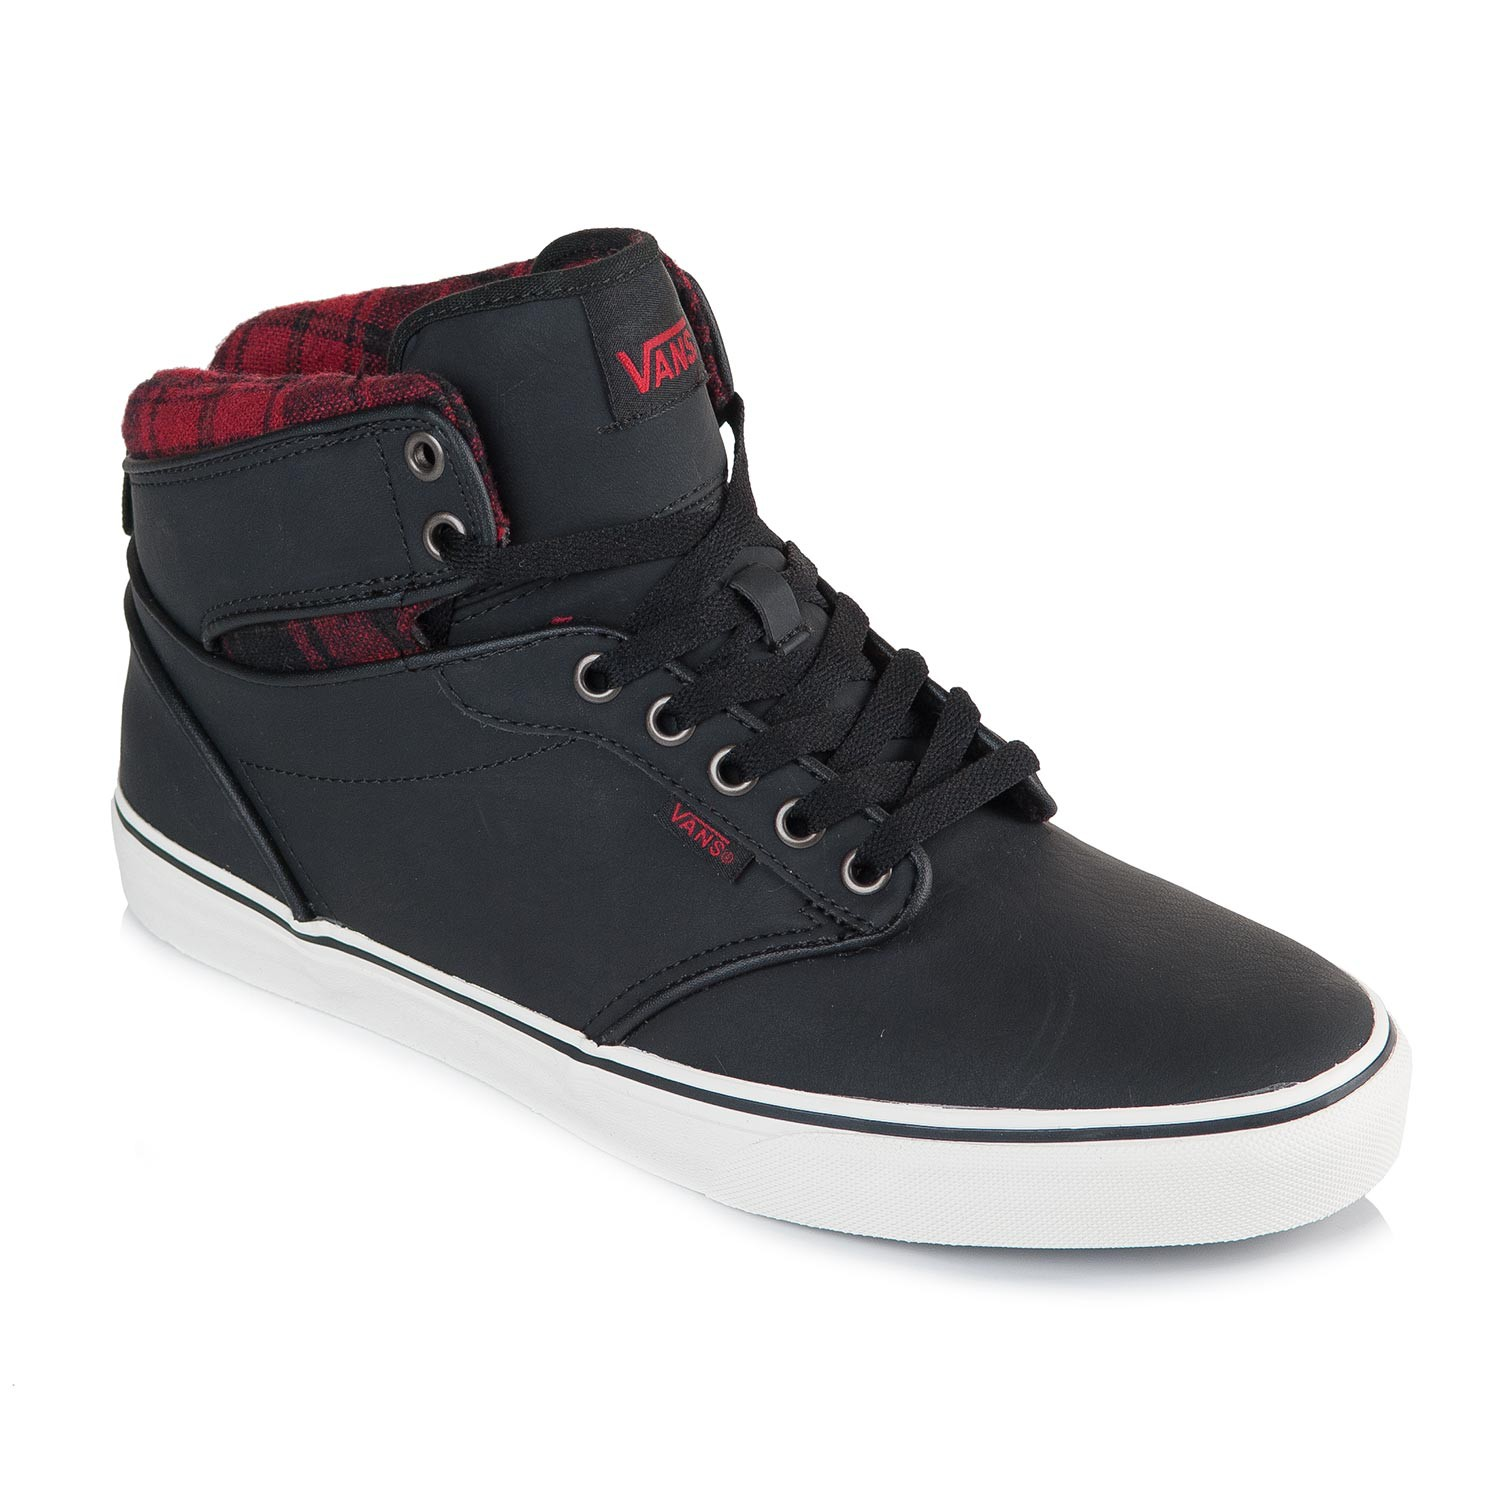 ceb02d8168 Vans Atwood Hi flannel black marshmallow